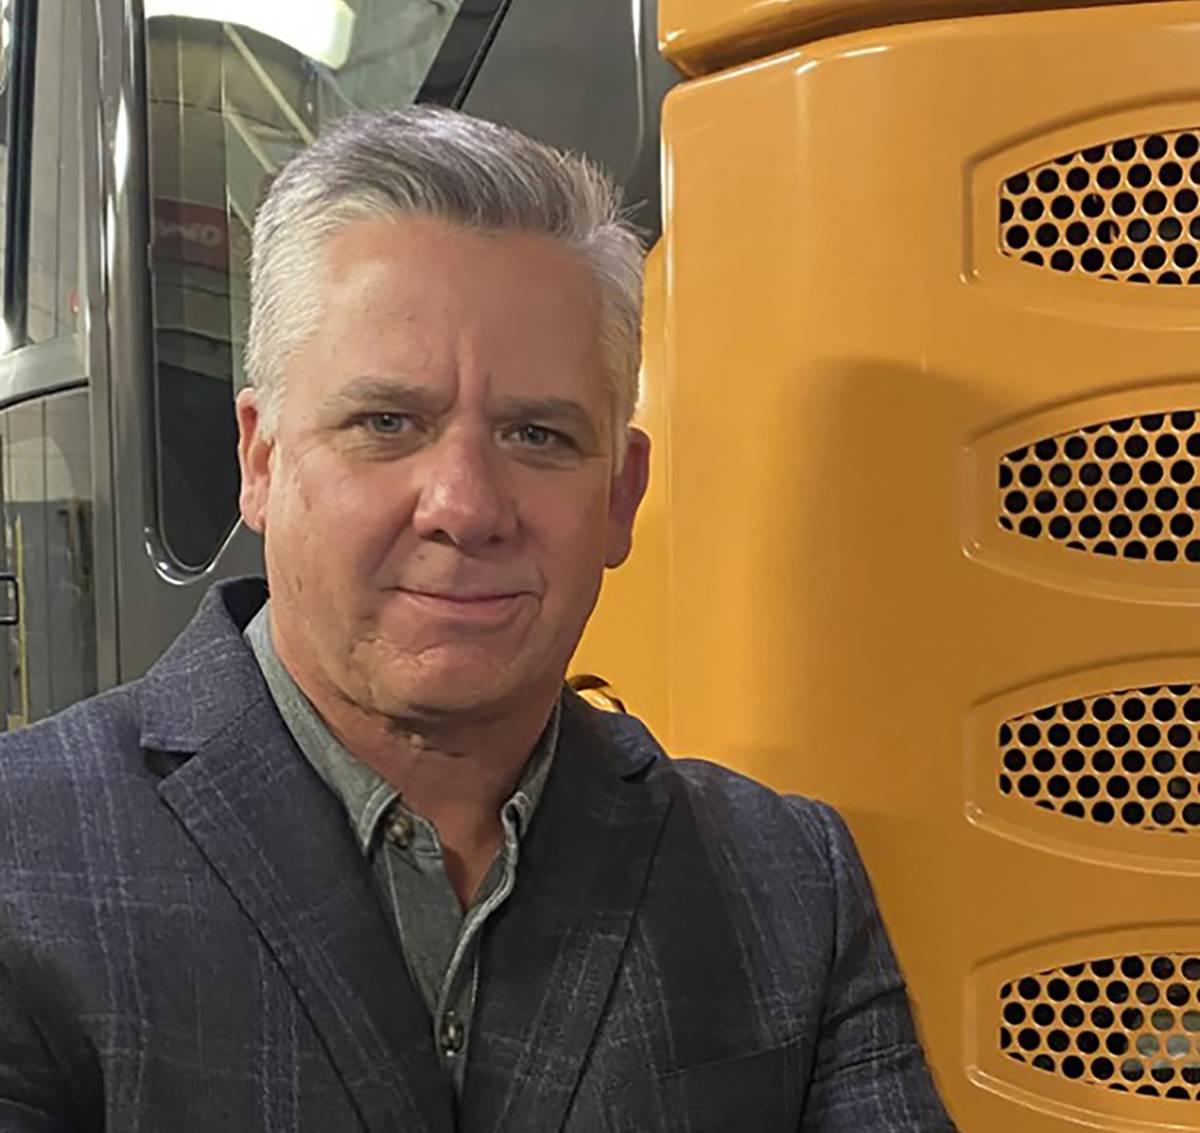 CASE CE North America appoints Terry Dolan as New Head of Sales and Marketing